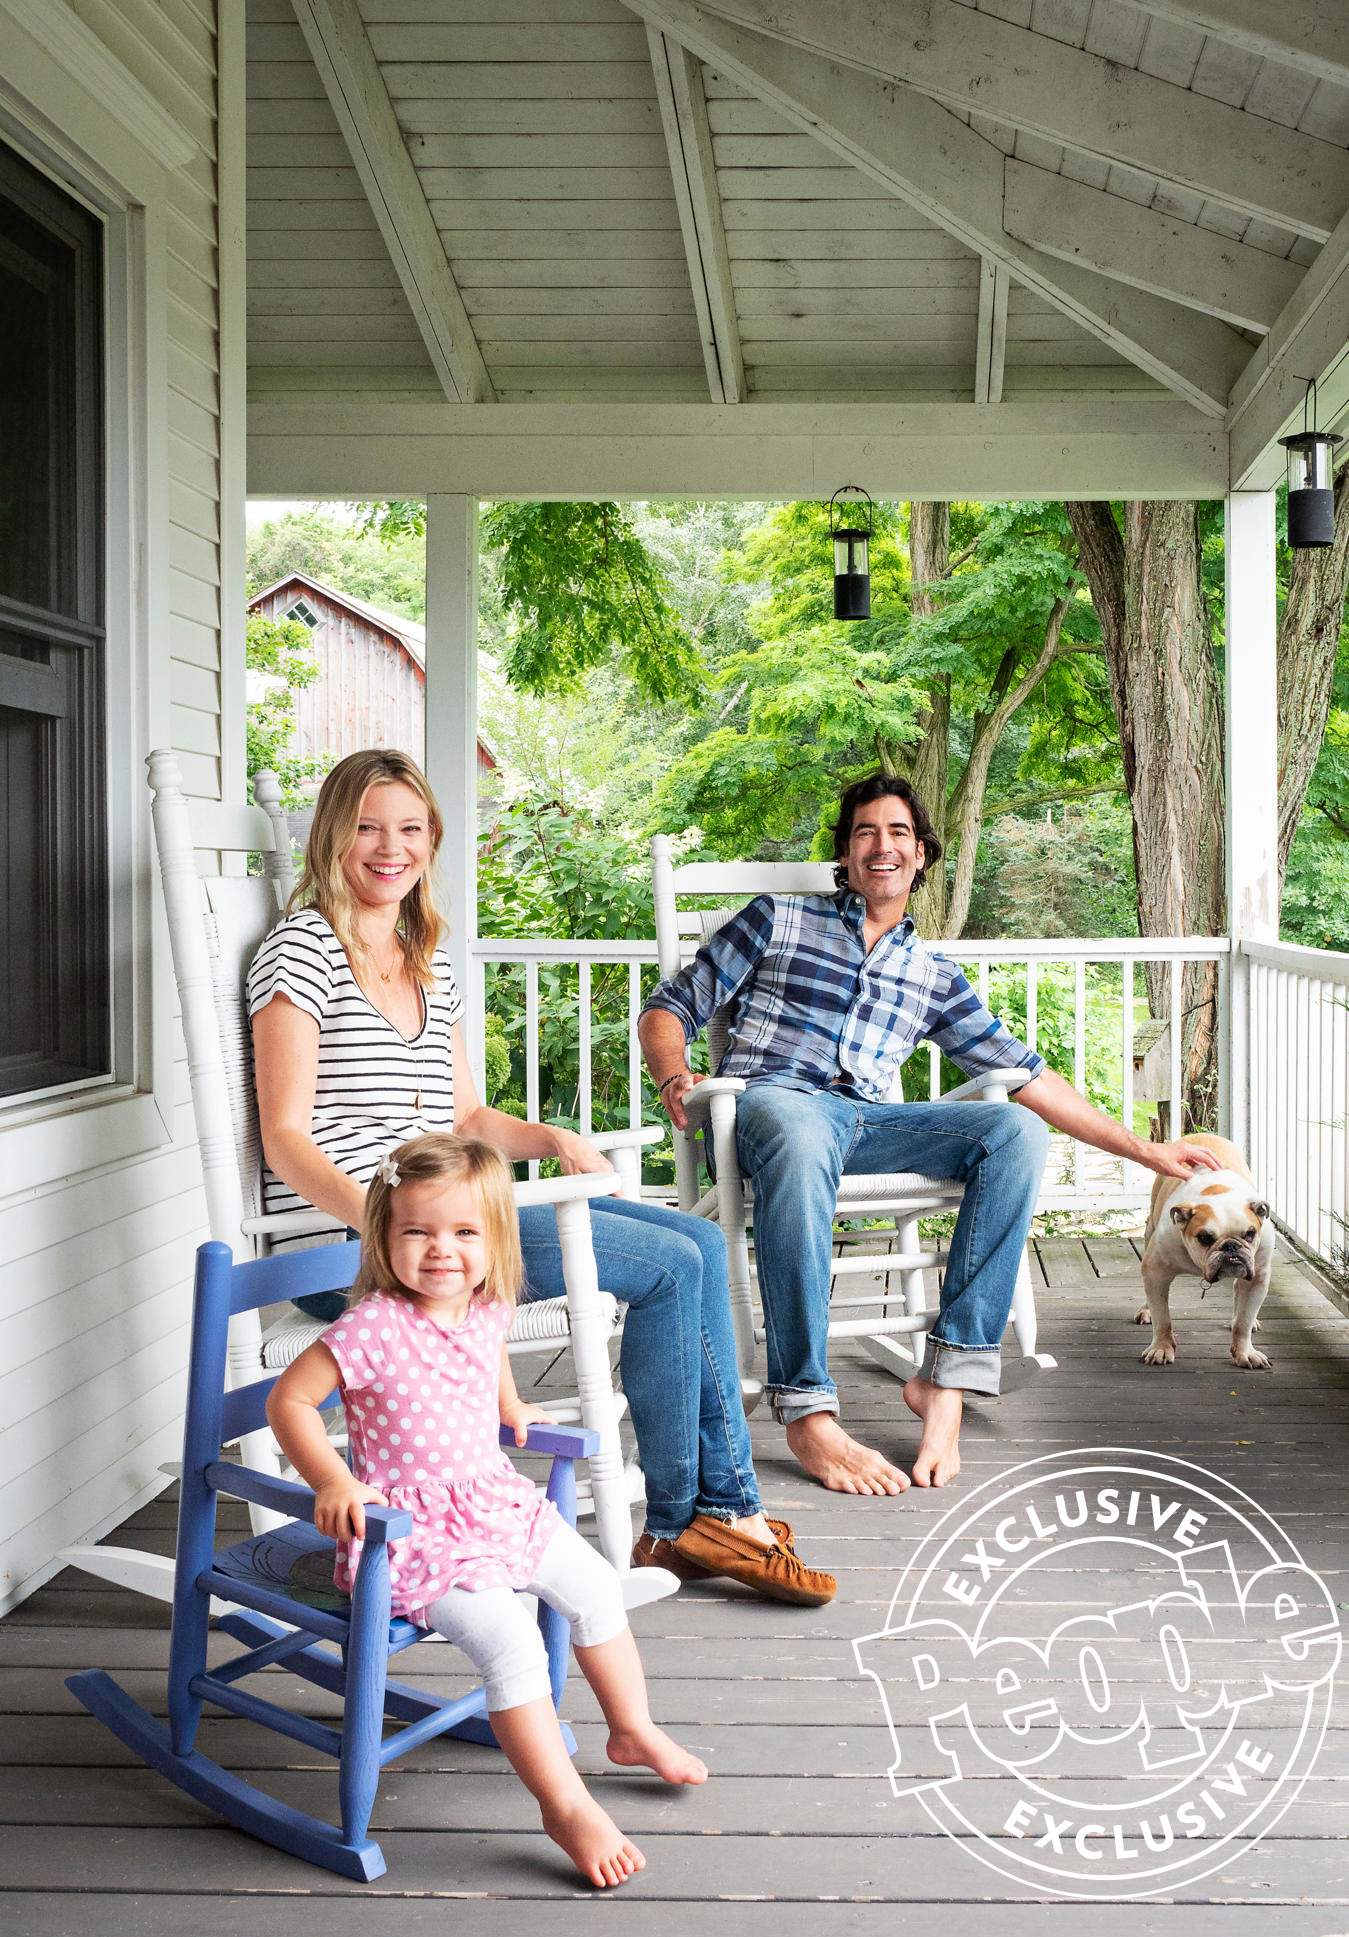 Carter Oosterhouse and Amy Smart's Michigan Farmhouse